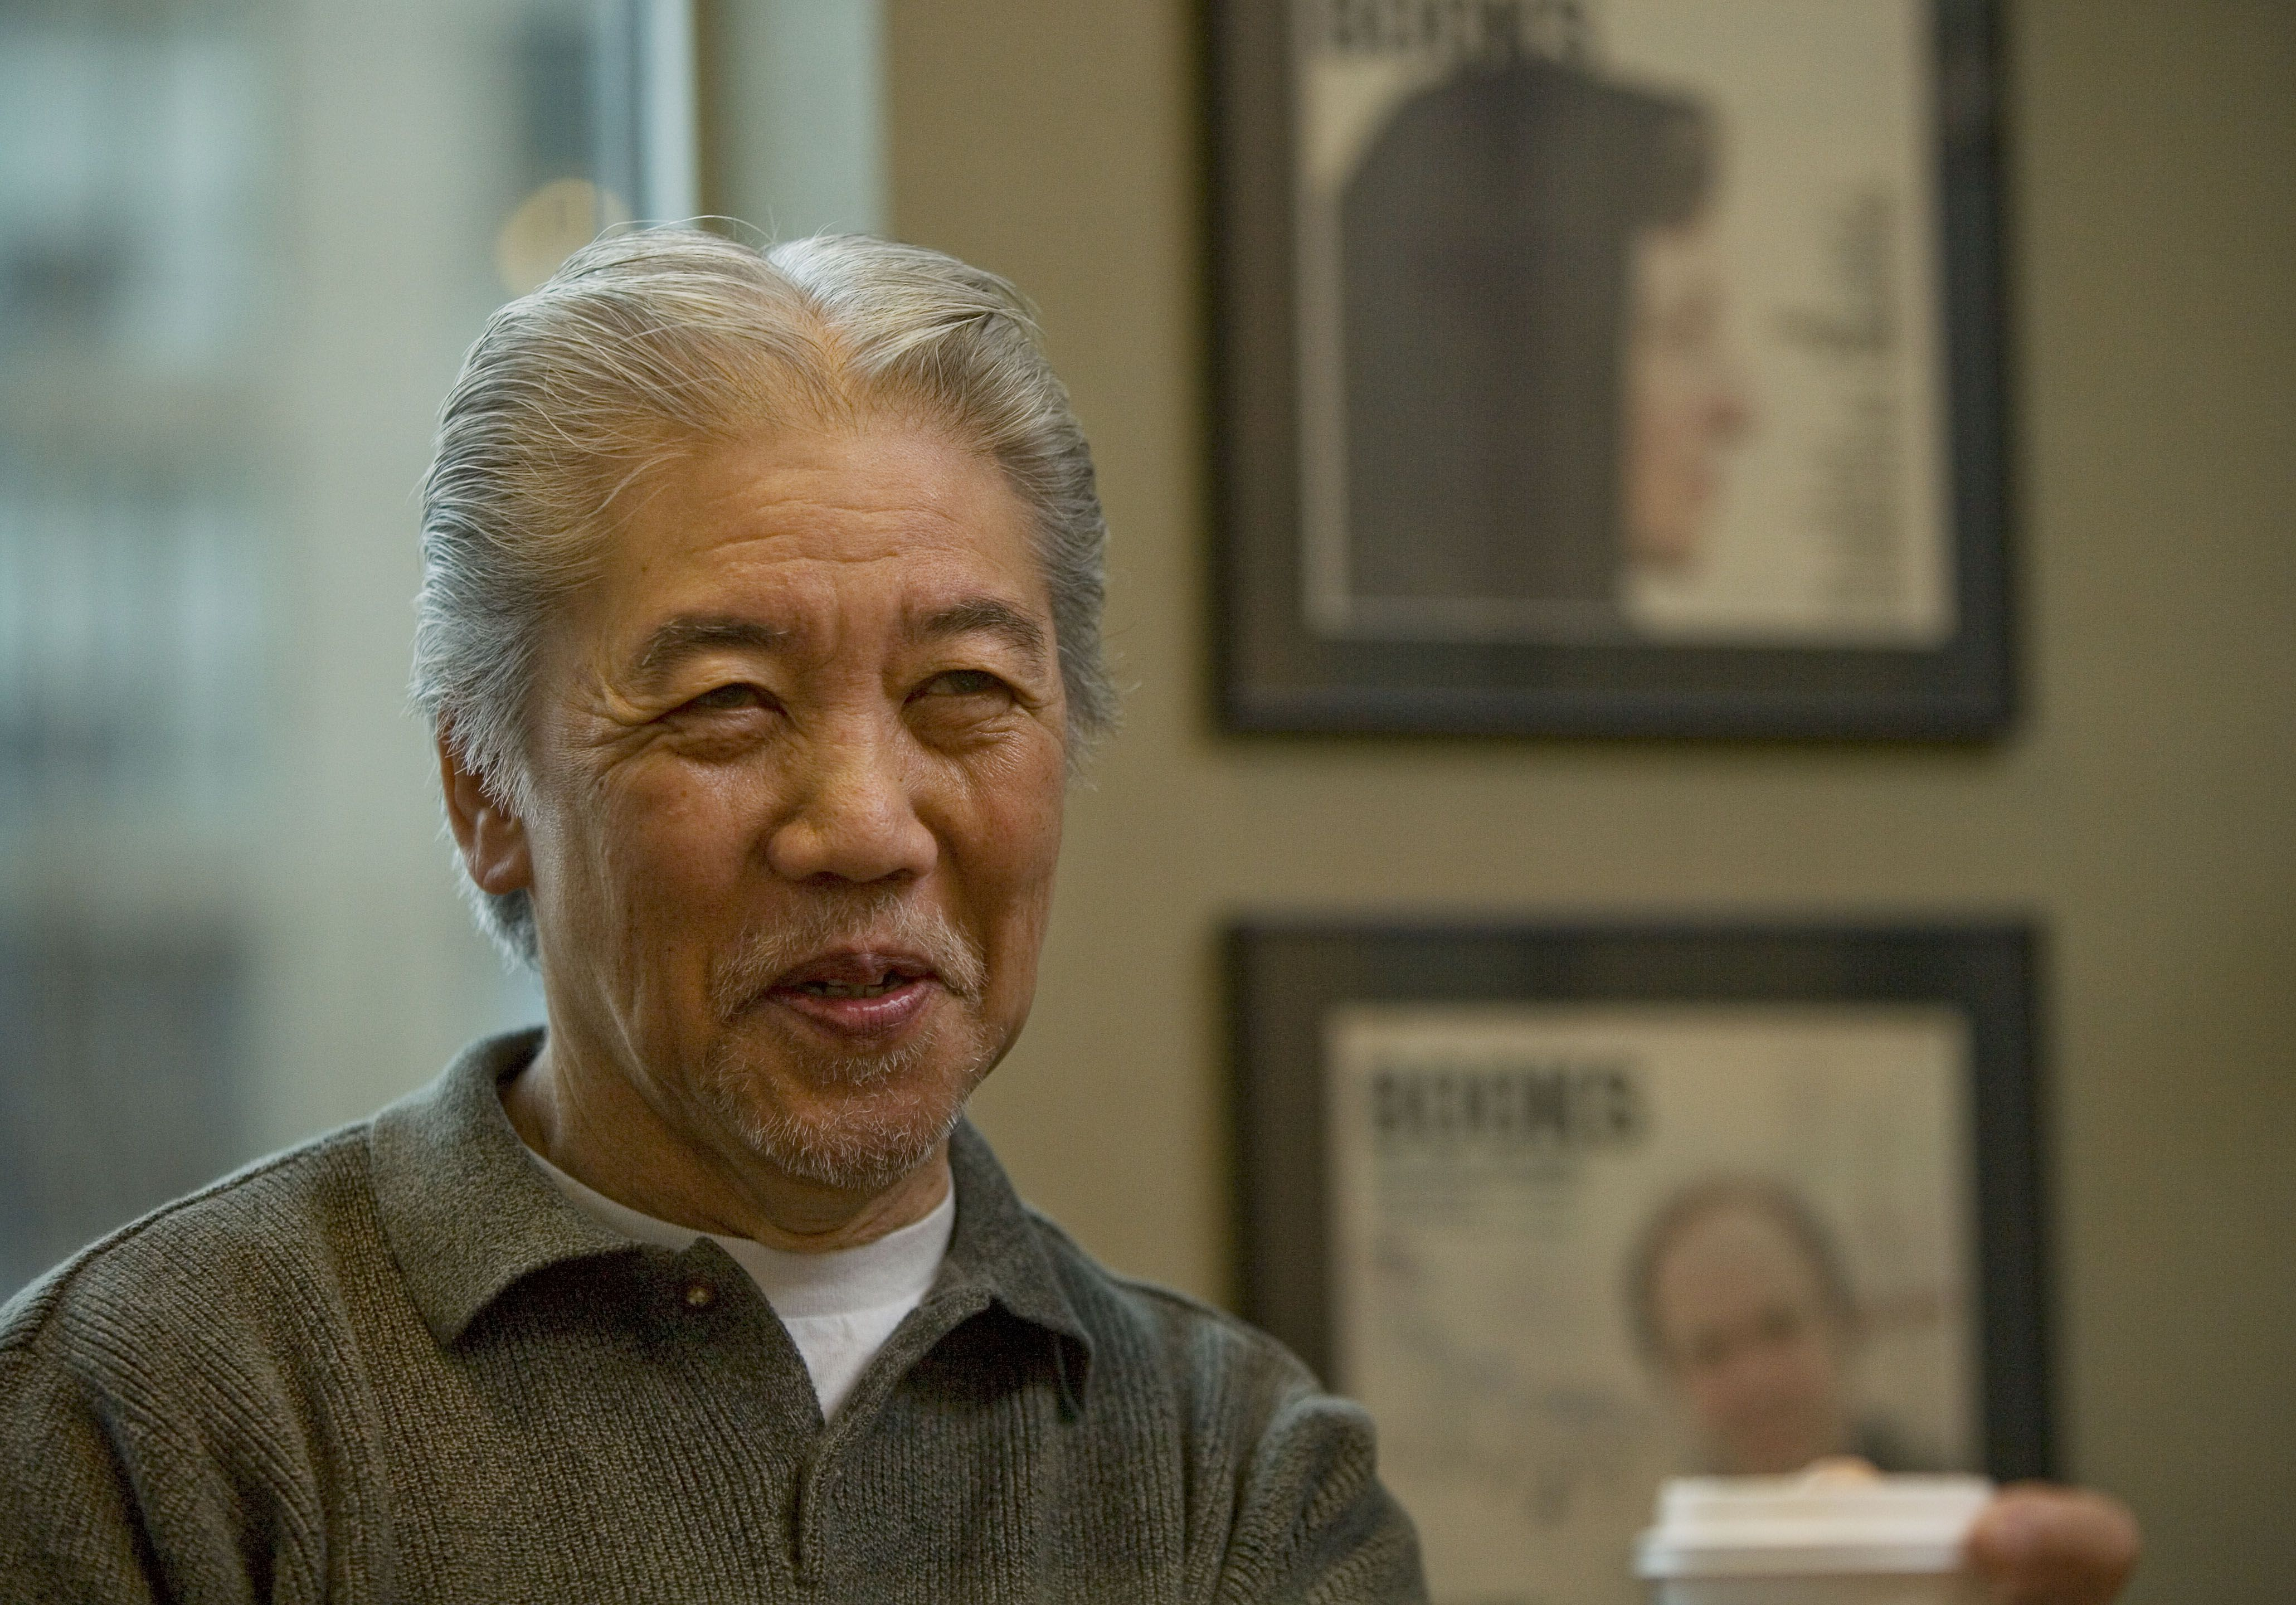 Canadian author Wayson Choy inspired others with tales of childhood in Chinatown